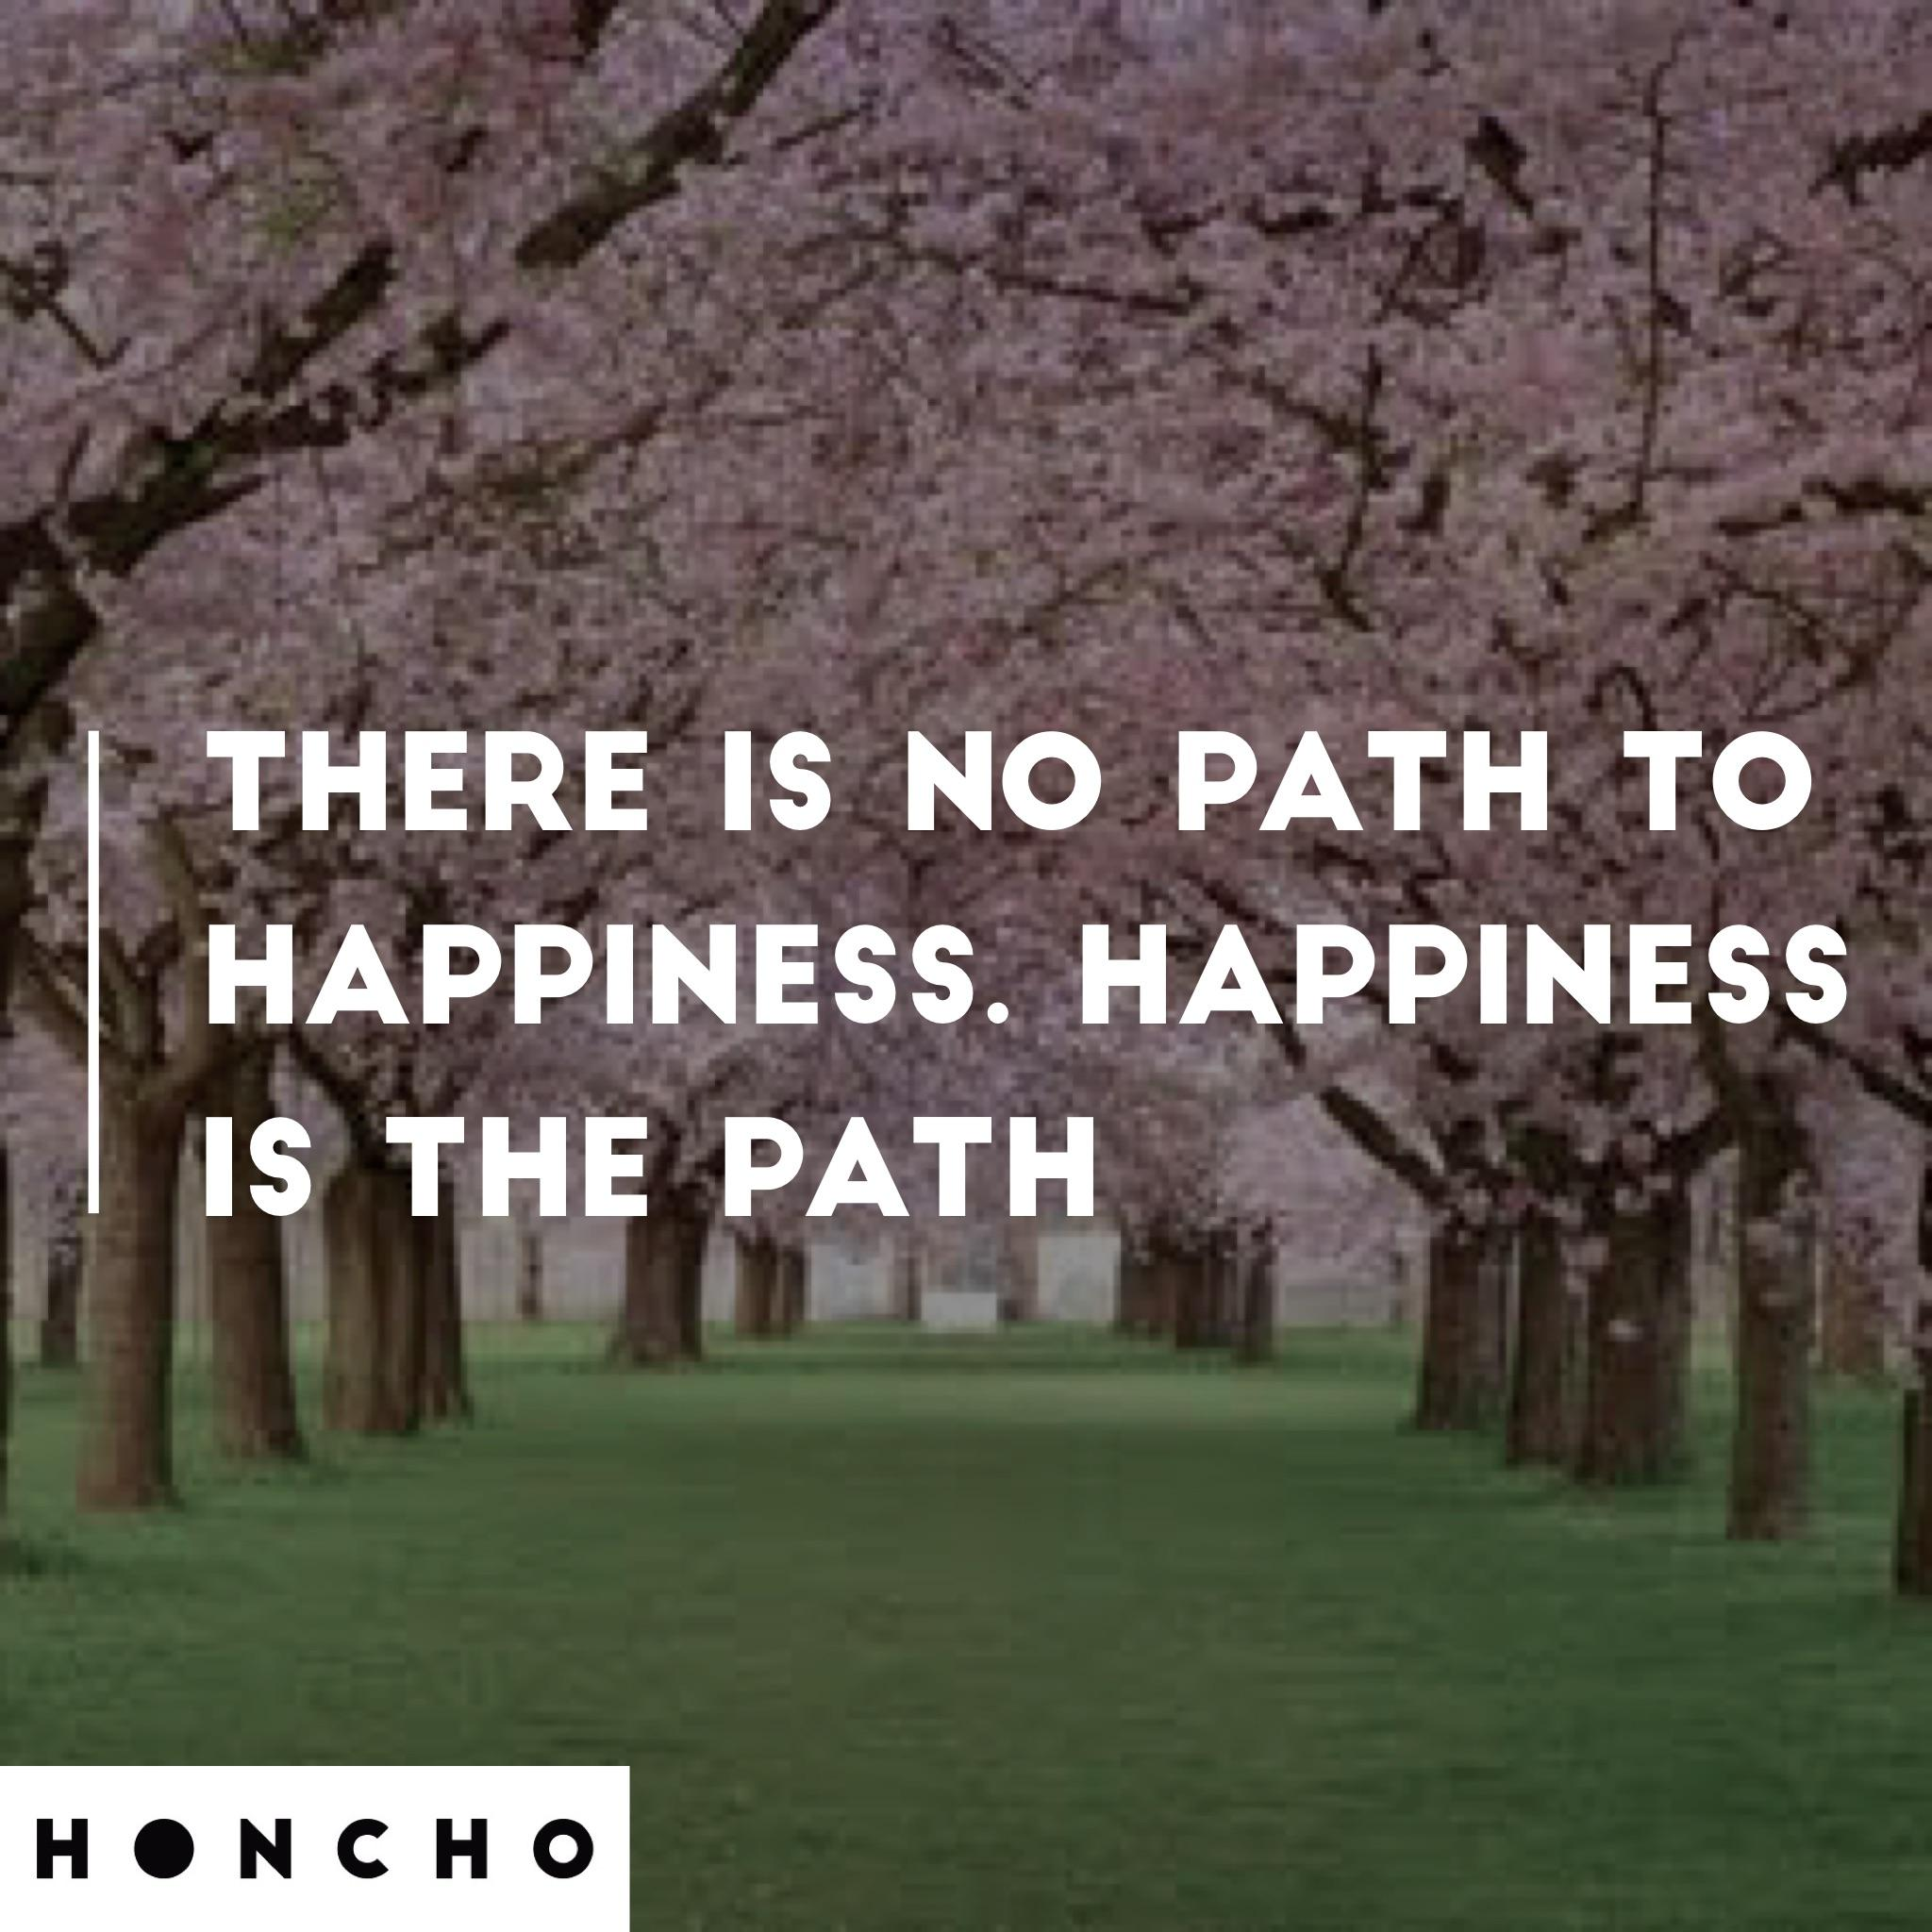 [image] There is no path to Happiness. Happiness is the path